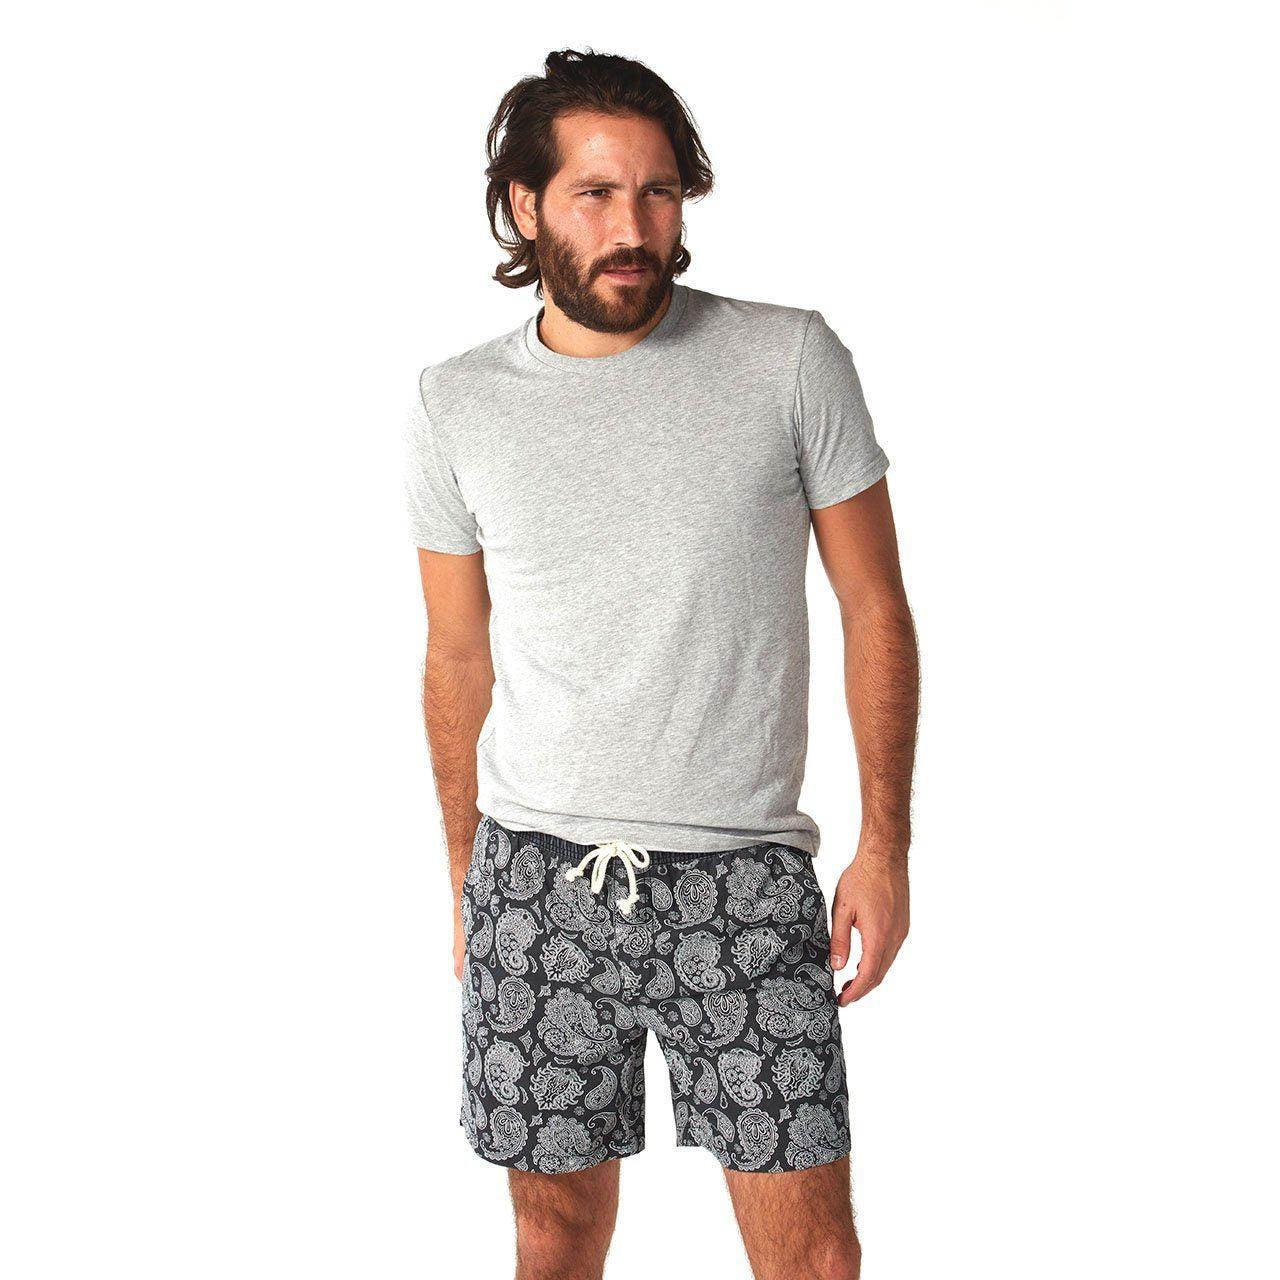 black swim trunks shorts mens swimwear clothes clothing lord owens